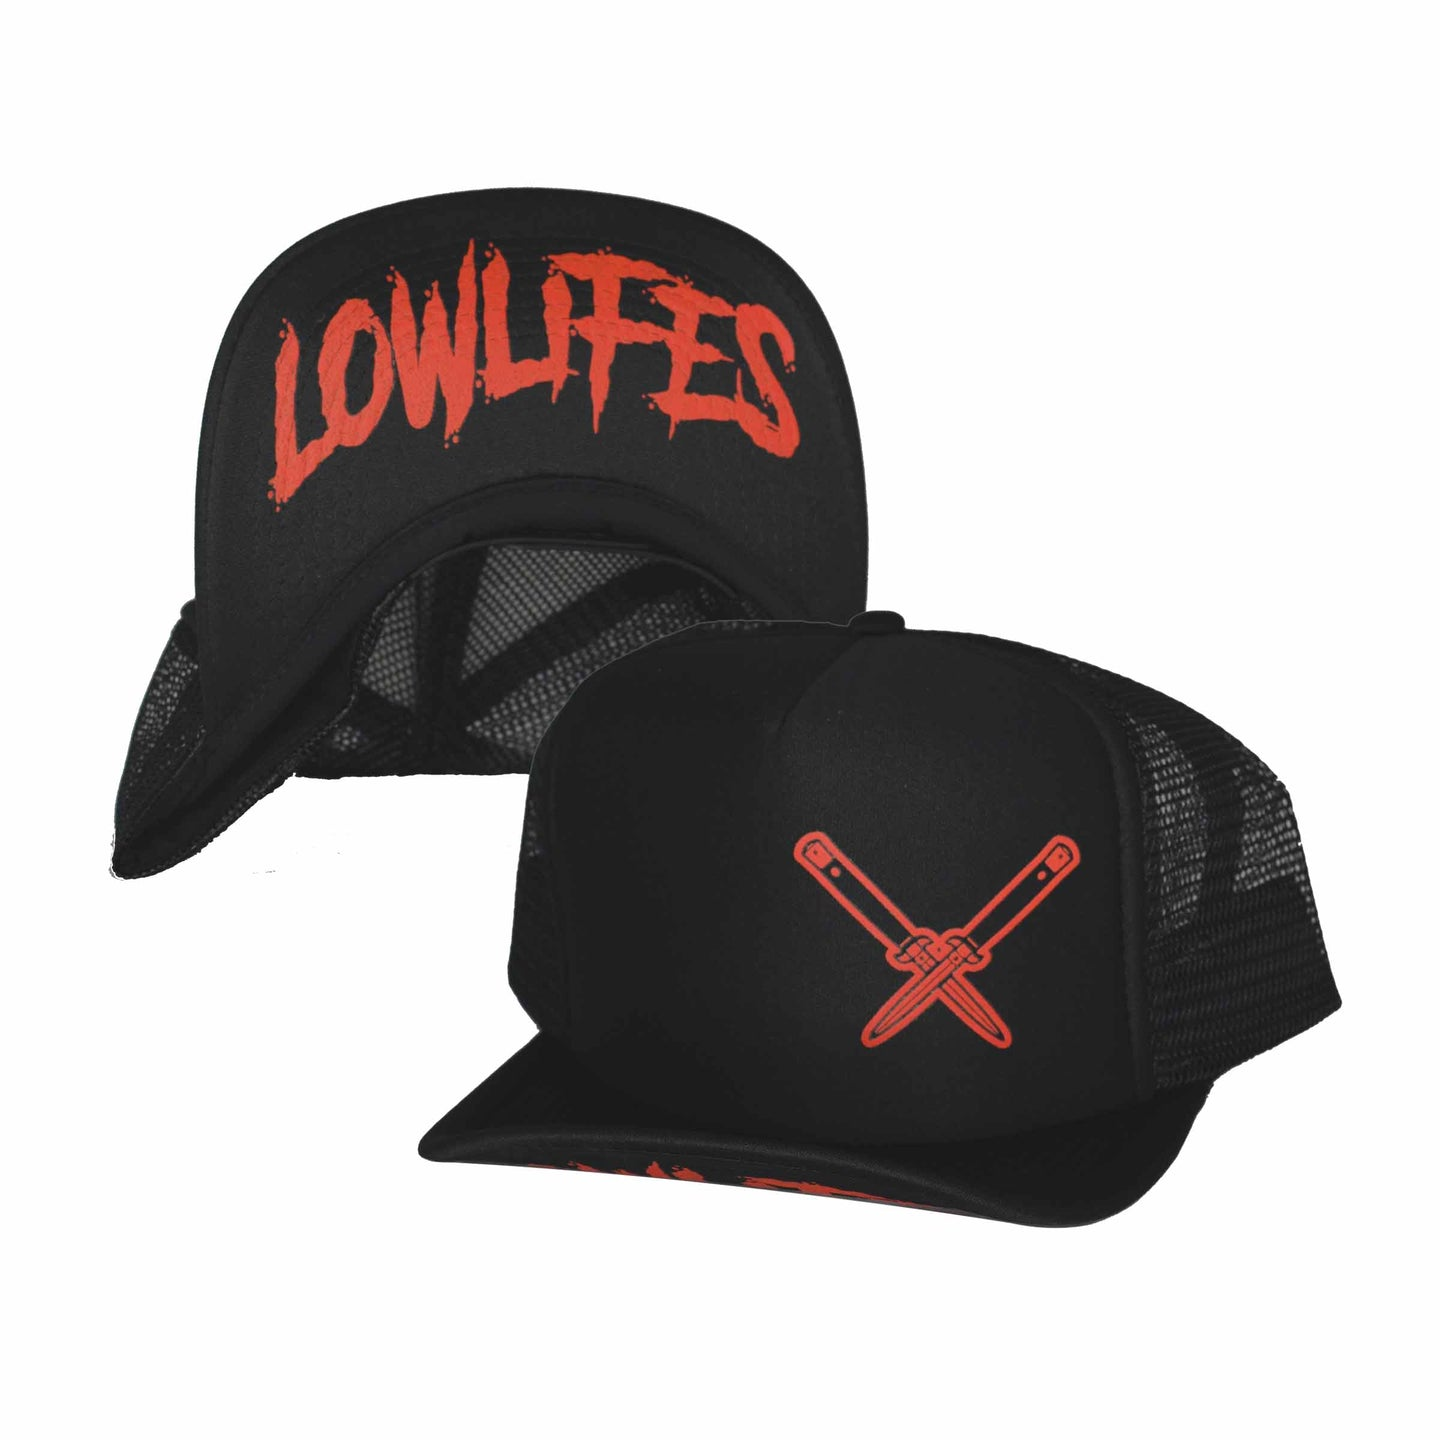 Hat - Trucker - Essential - Blk/Red